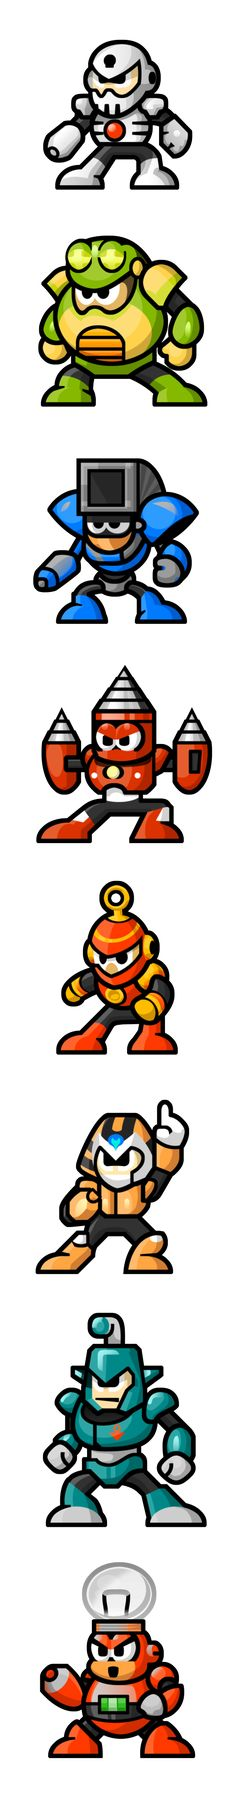 MegaMan 'Sprites'-Bosses of 4 by WaneBlade.deviantart.com on @DeviantArt